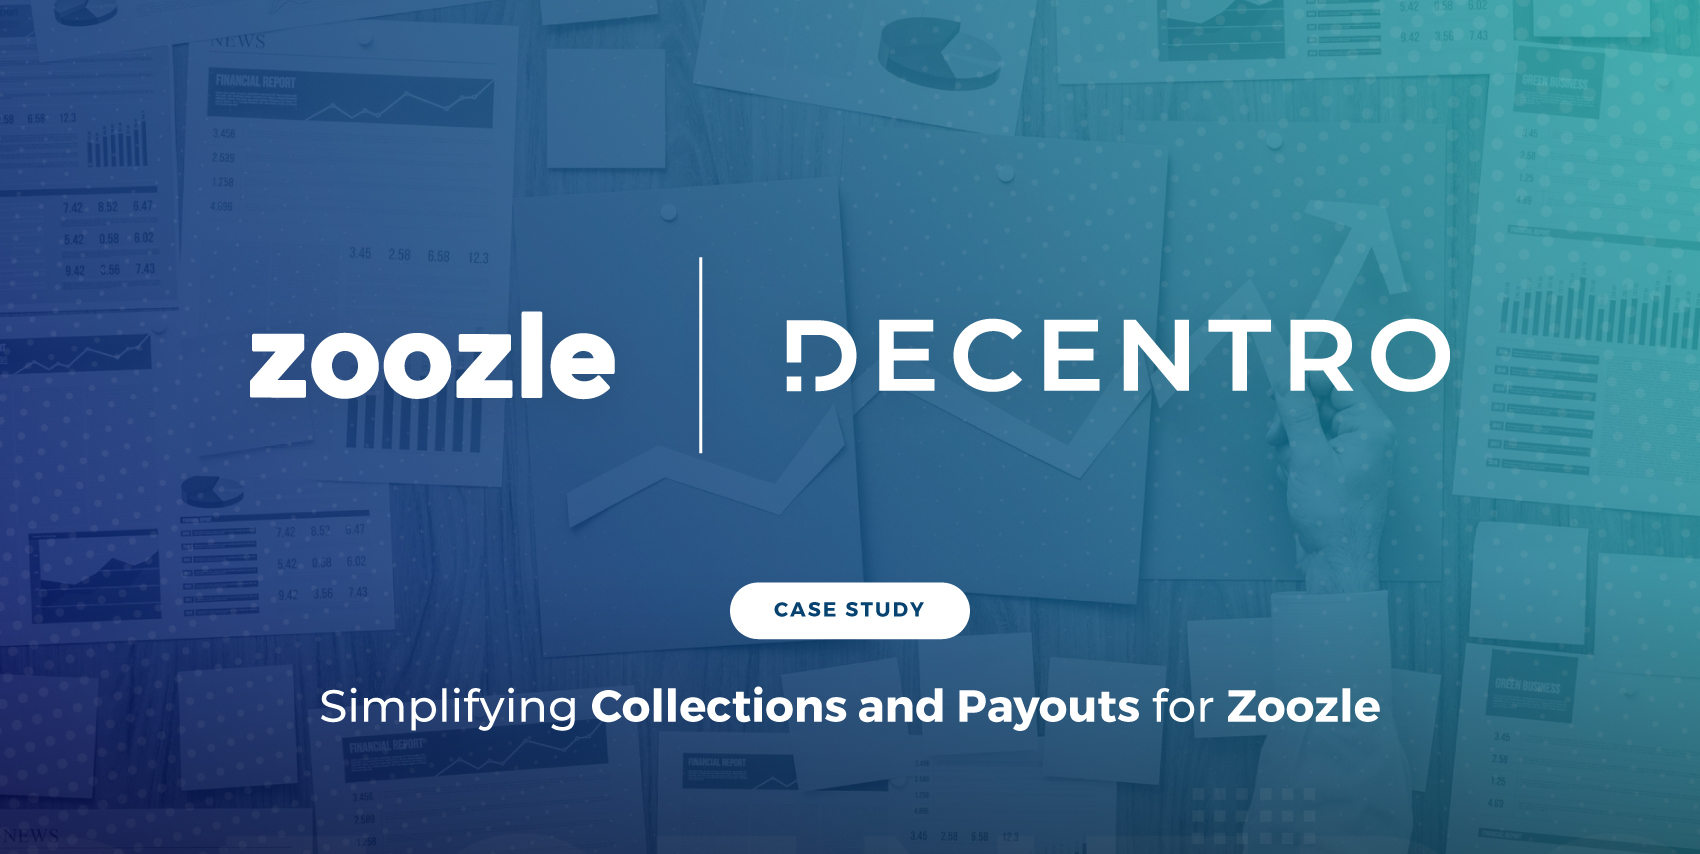 How Zoozle Simplified Collections & Payouts with Decentro's APIs.